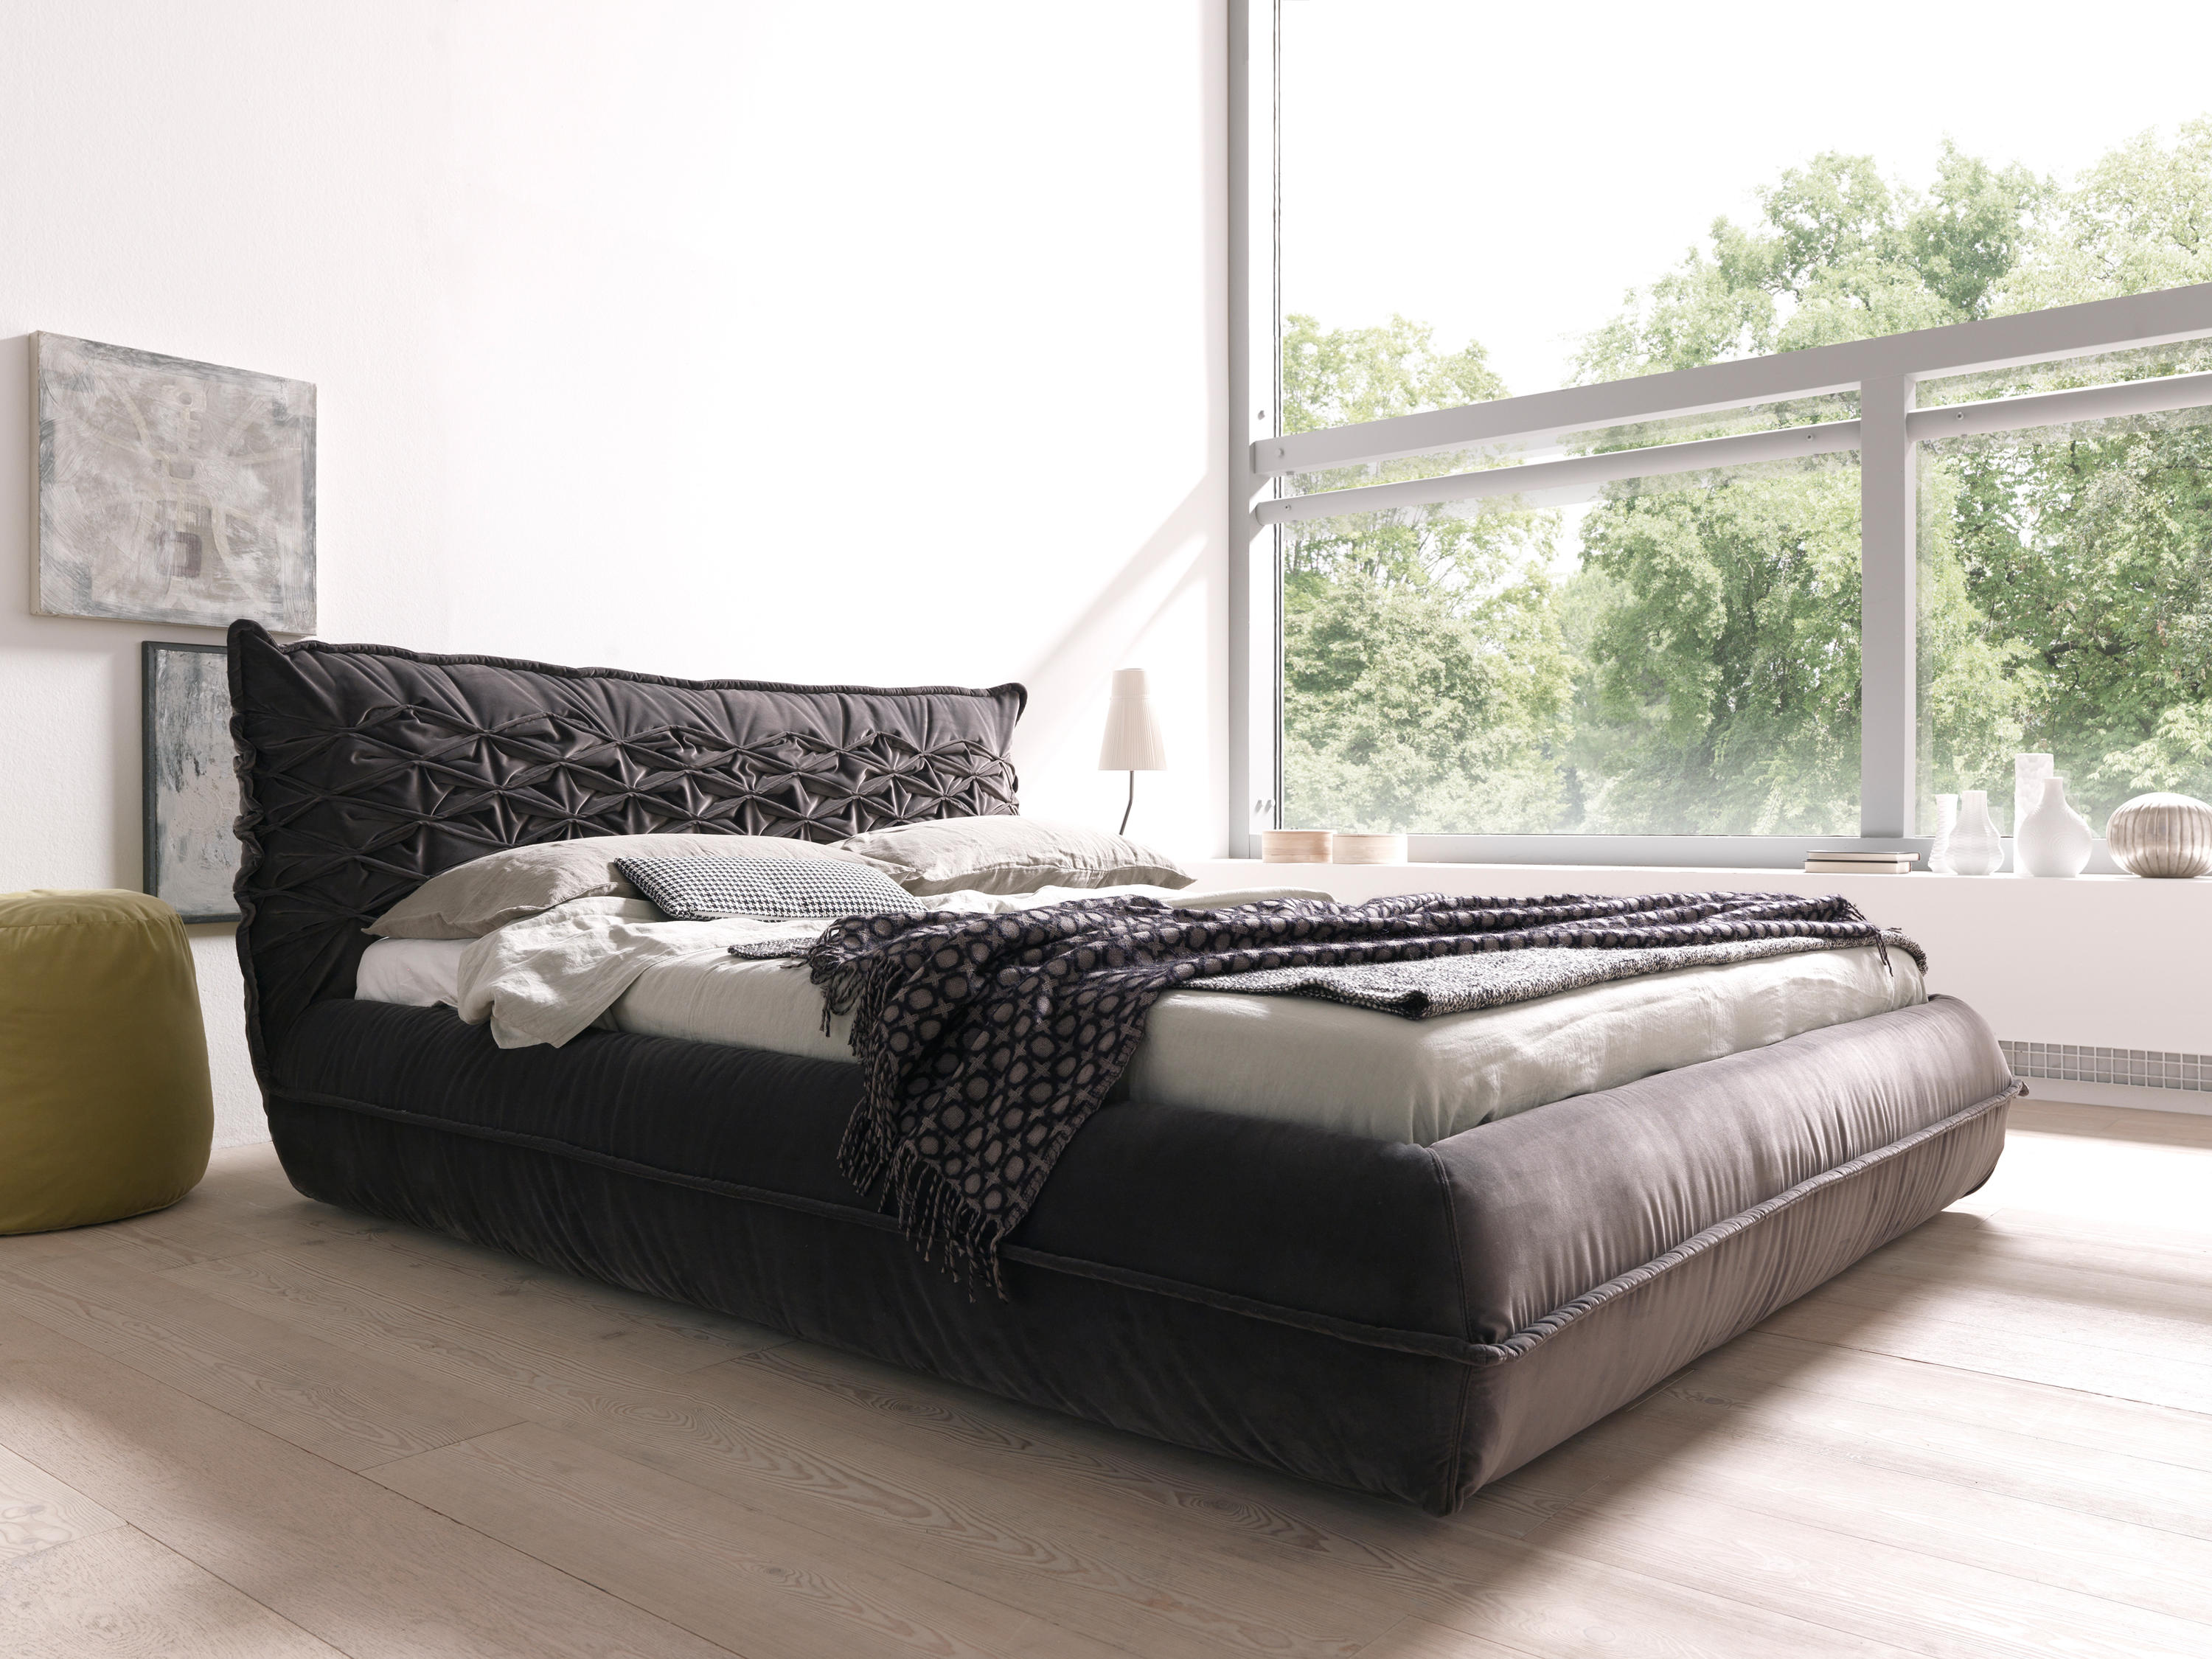 Letto Zip Bedden : Nido beds from bolzan letti architonic